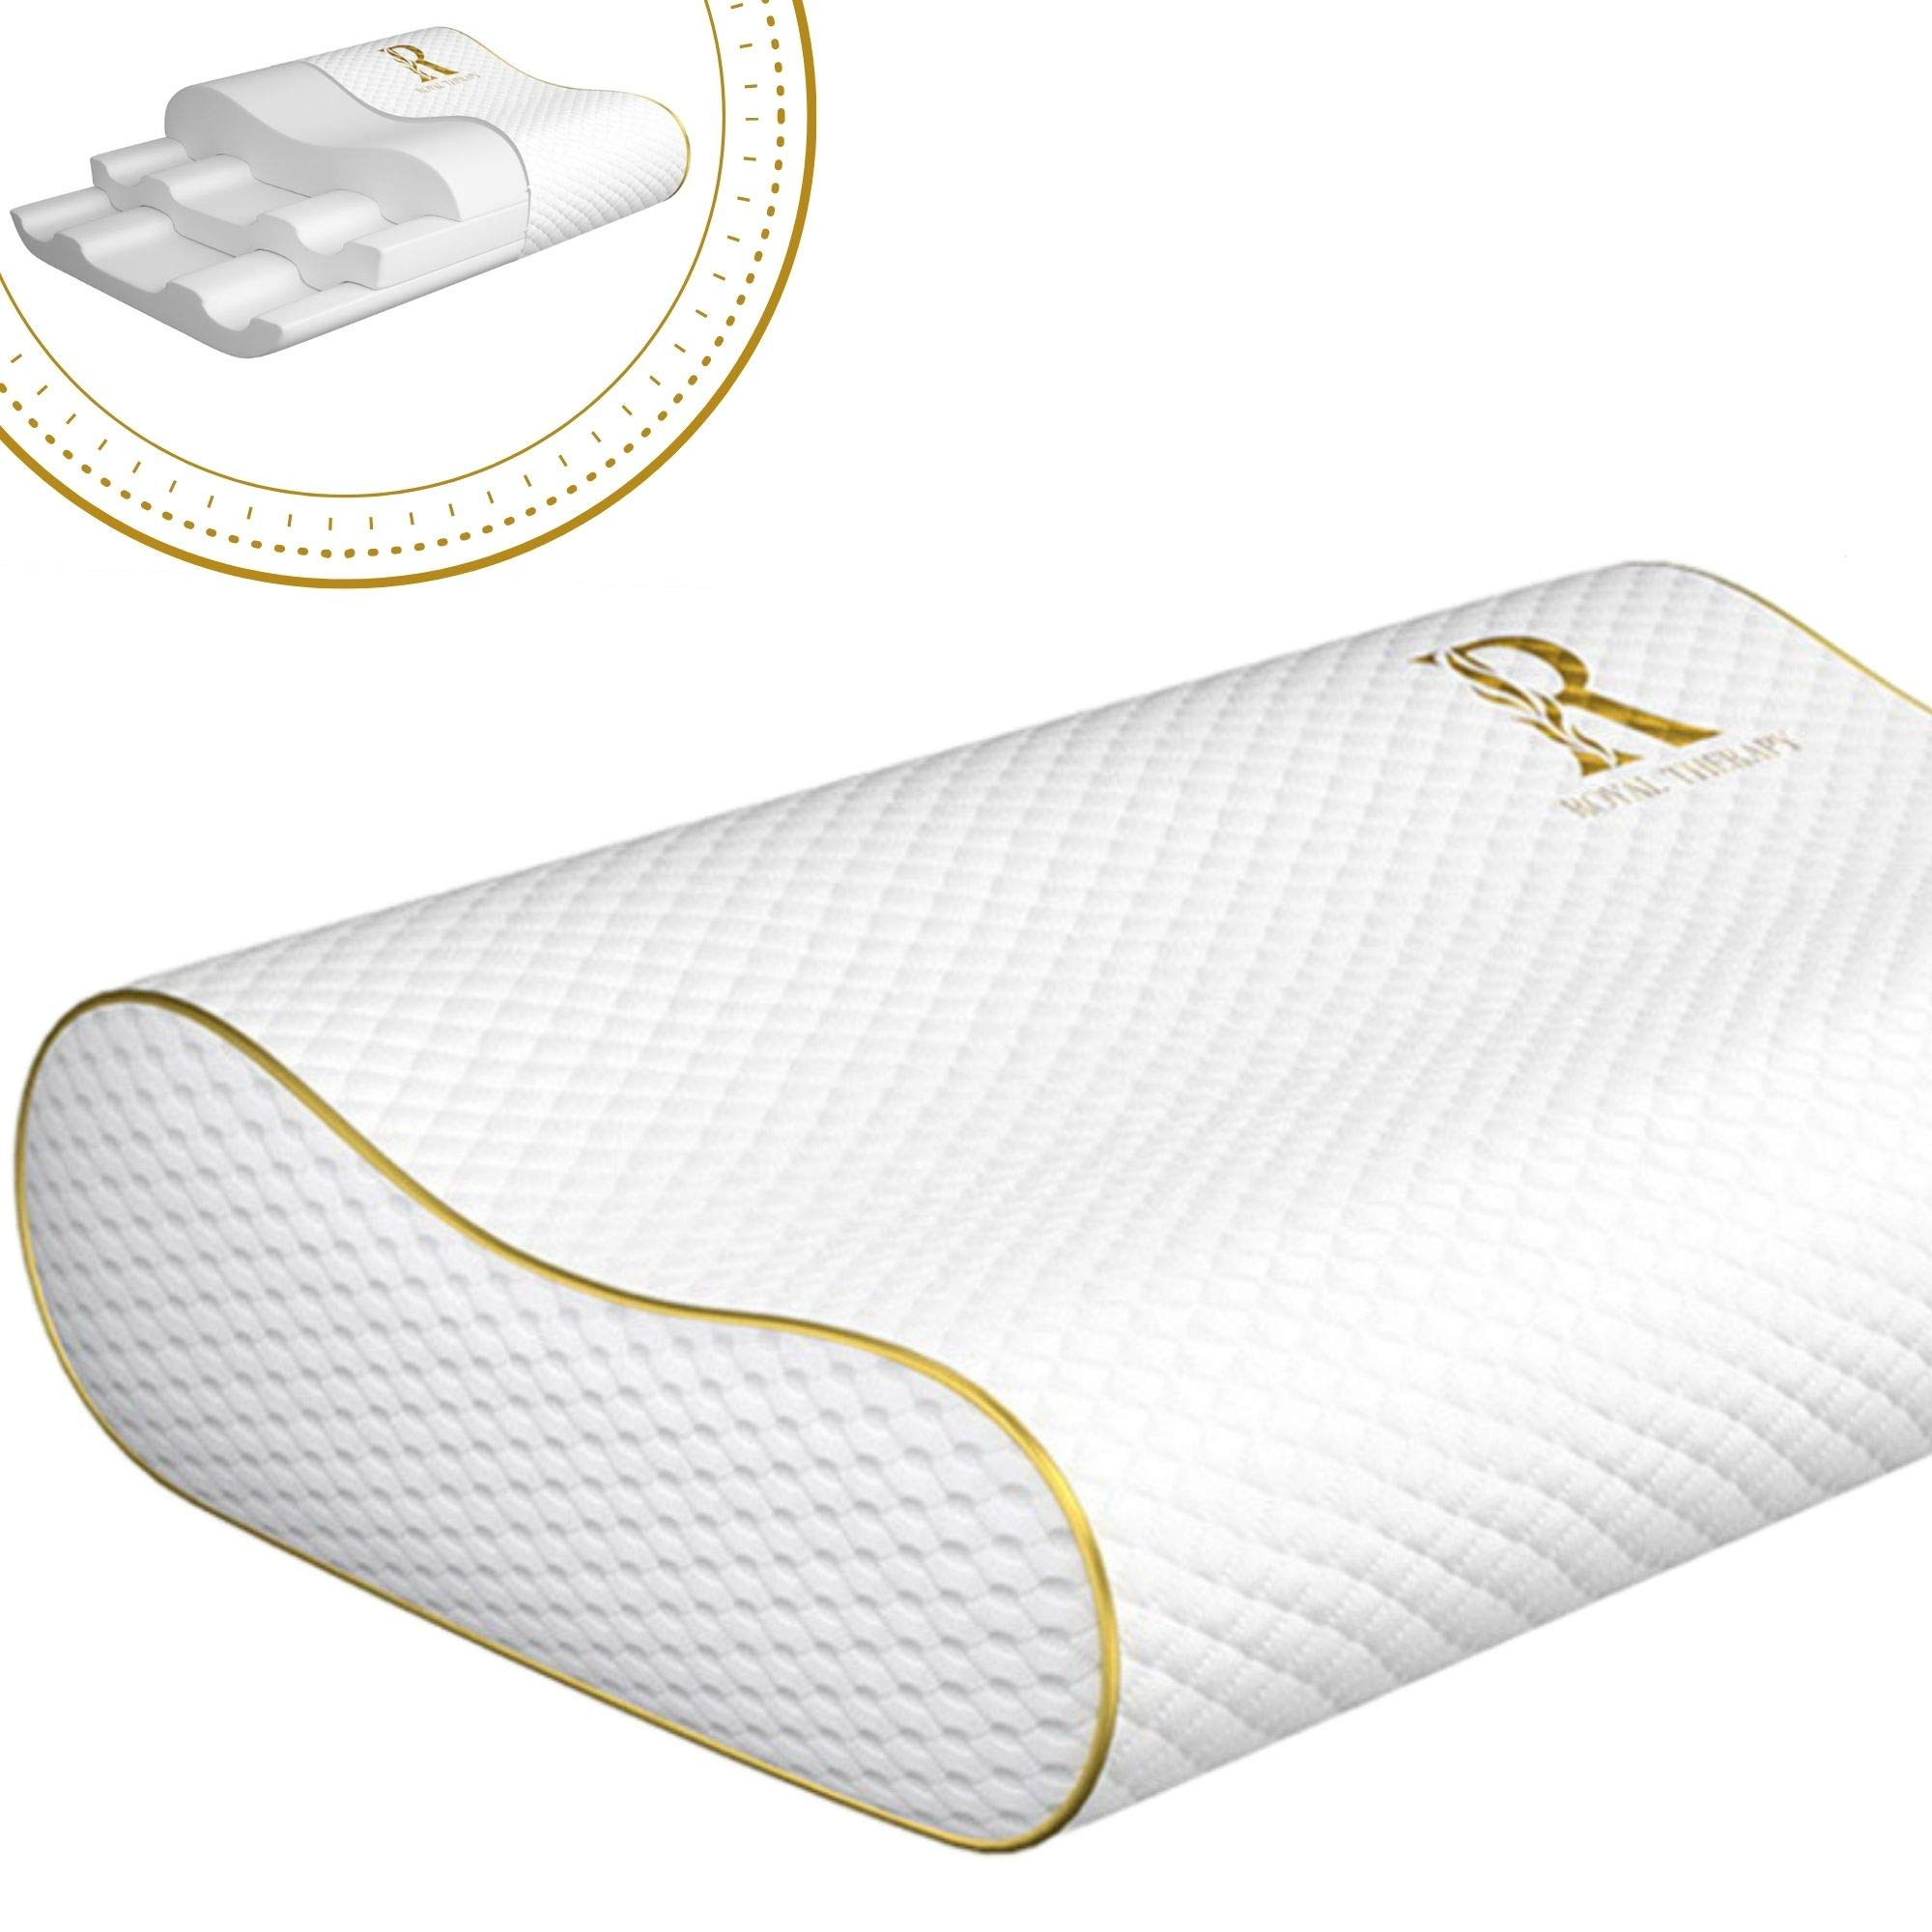 Royal Therapy Queen Memory Foam Pillow, Neck Pillow Bamboo Adjustable Side Sleeper Pillow for Neck & Shoulder, Support for Back, Stomach, Side Sleepers, Orthopedic Contour Pillow